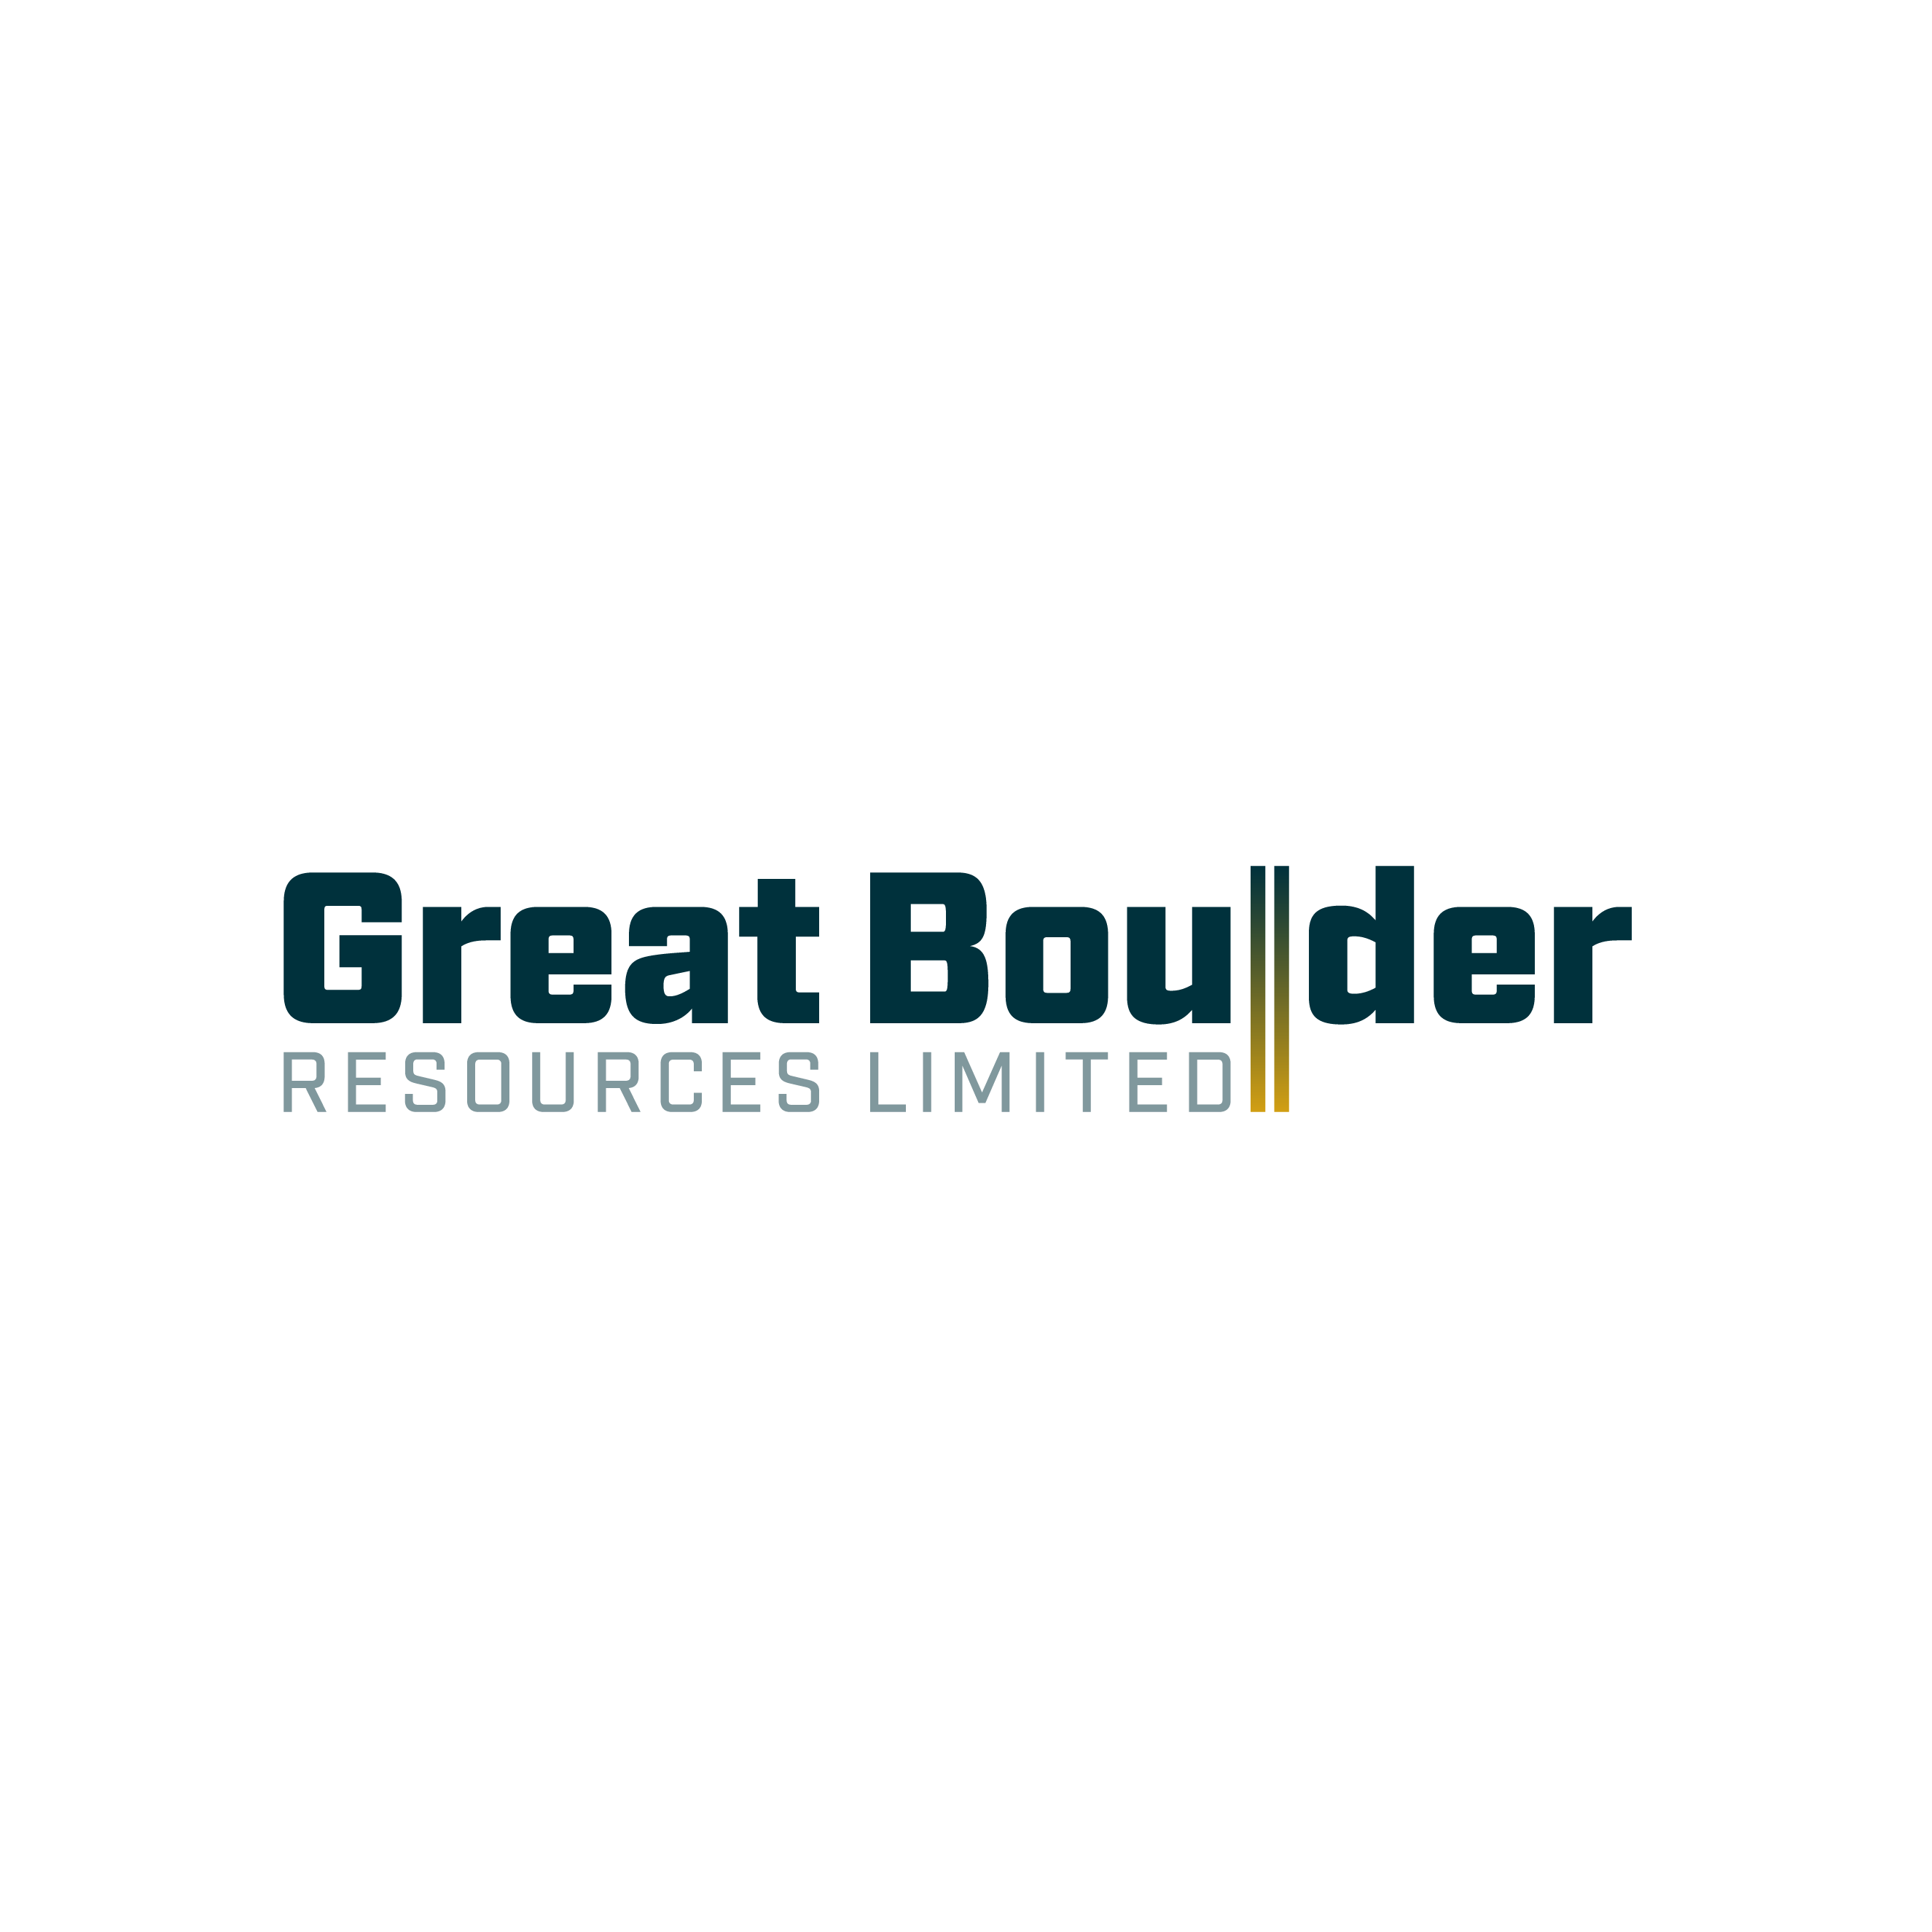 GREAT BOULDER RESOURCES LIMITED